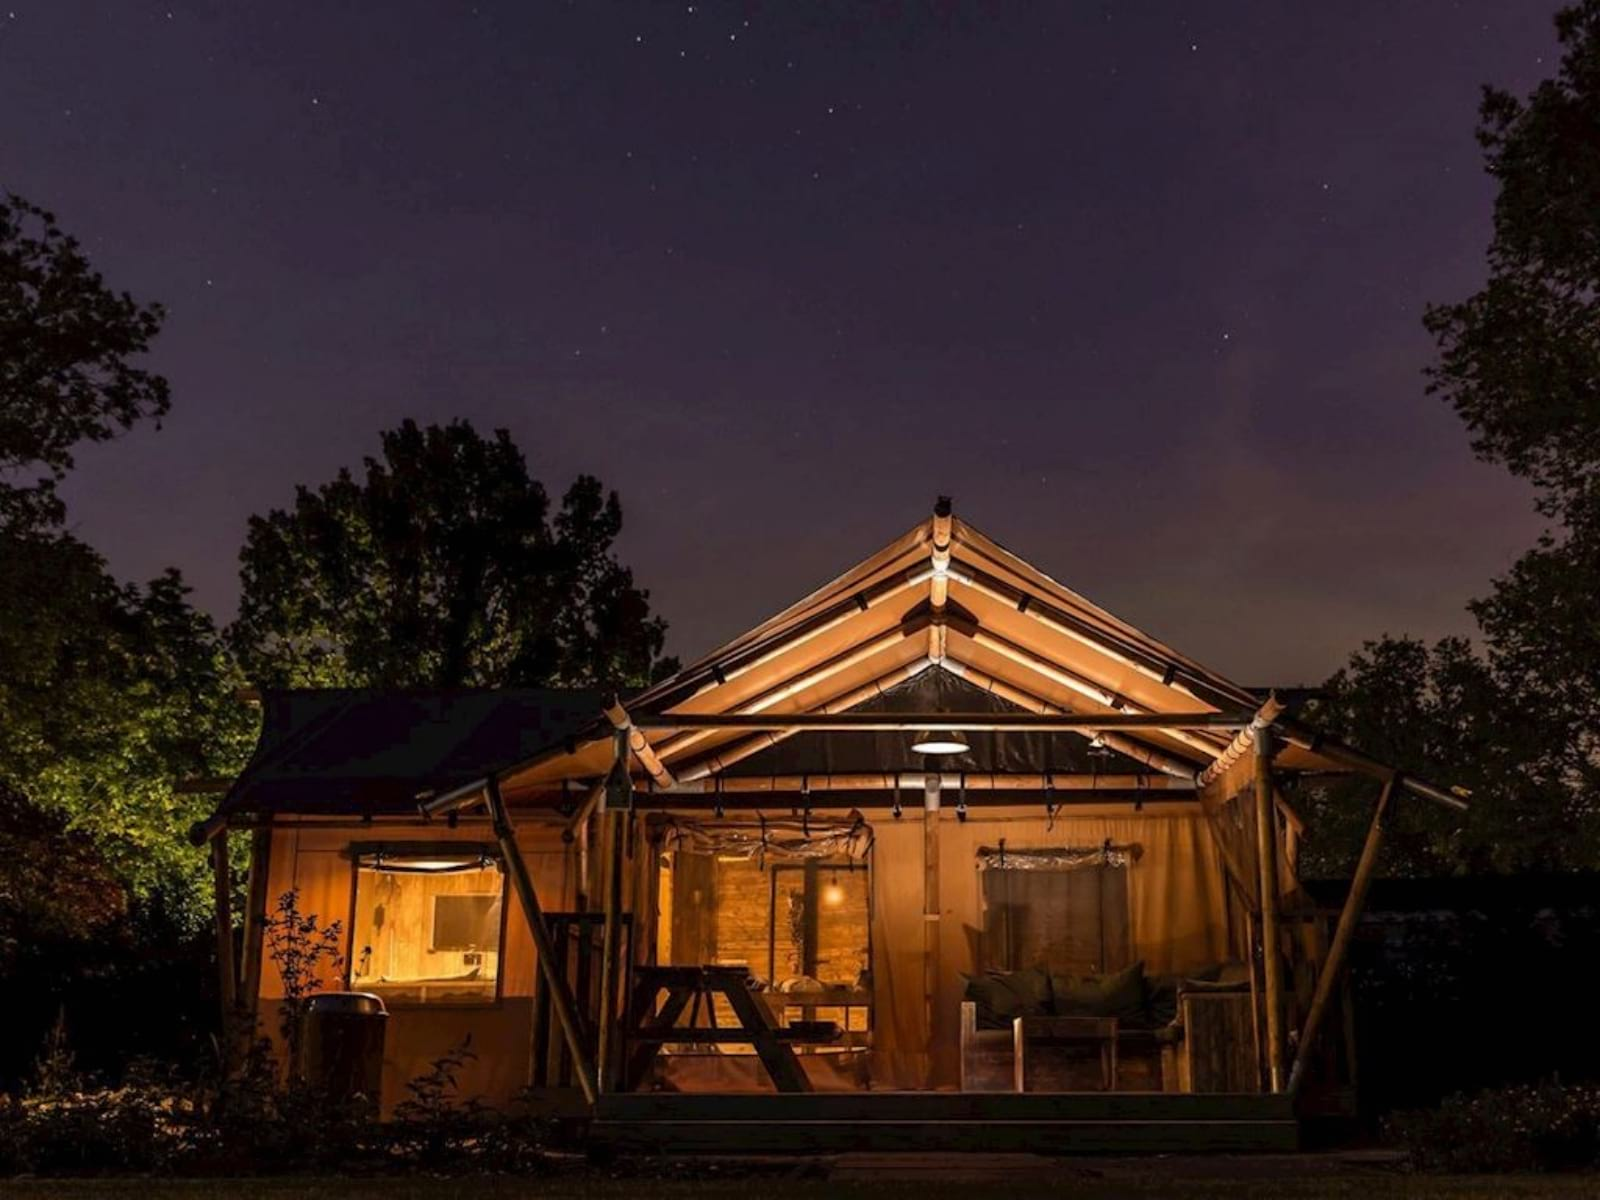 Supertrips - Glamping overnachting in 't Gooi